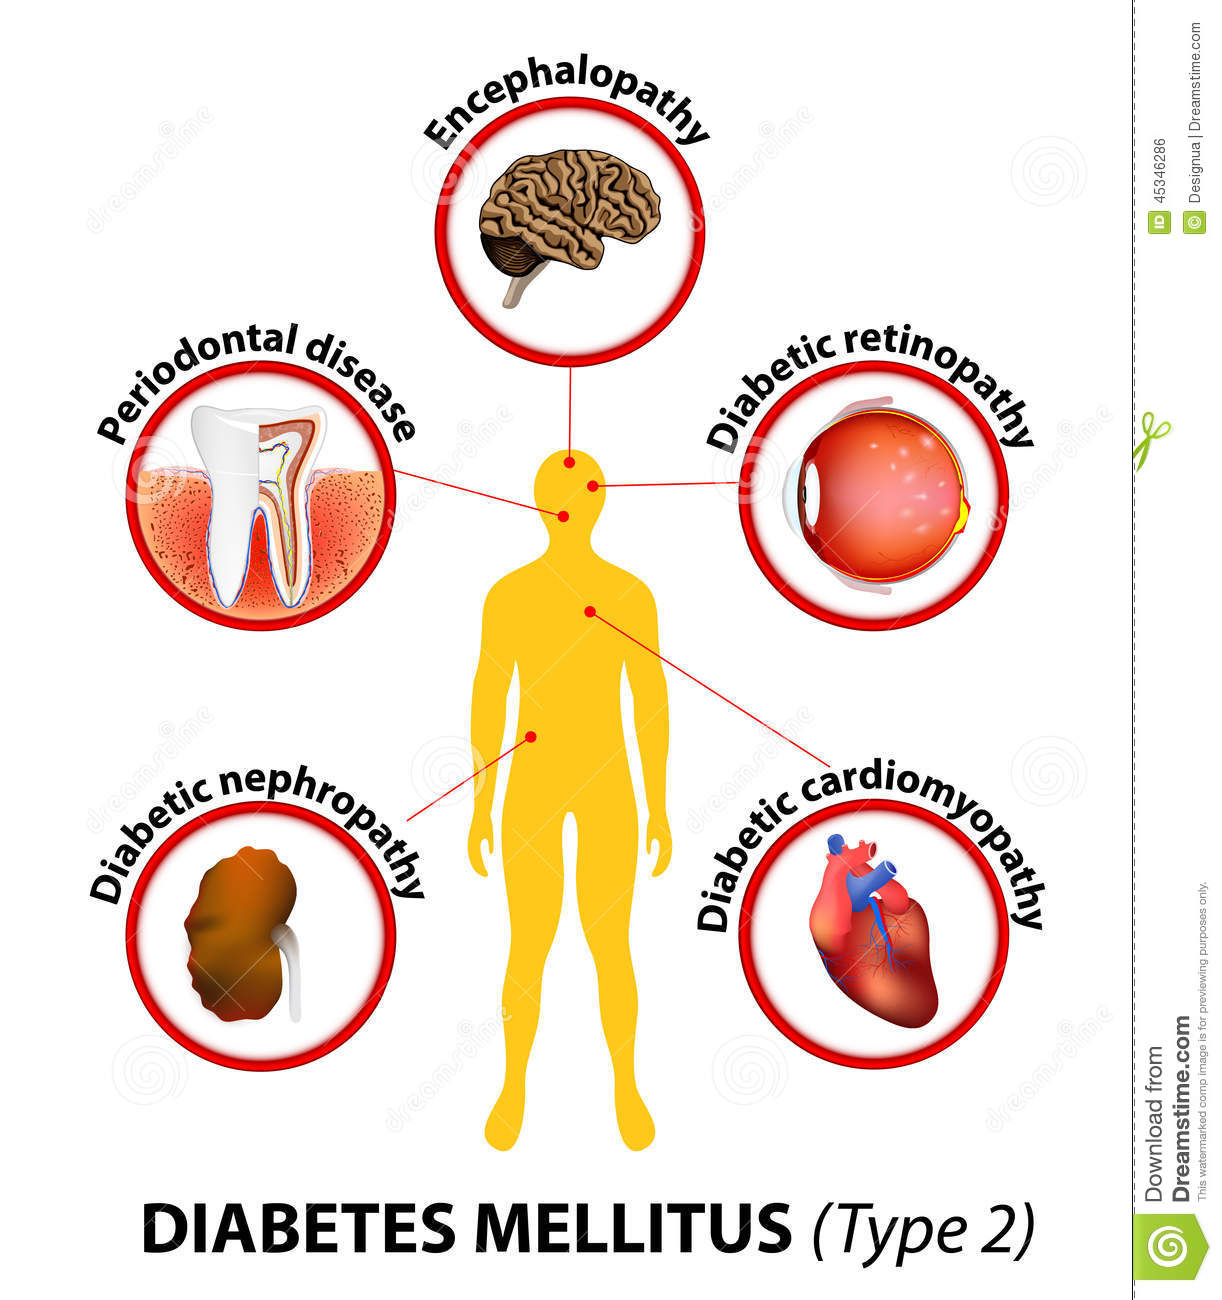 dieet diabetes mellitus type 2